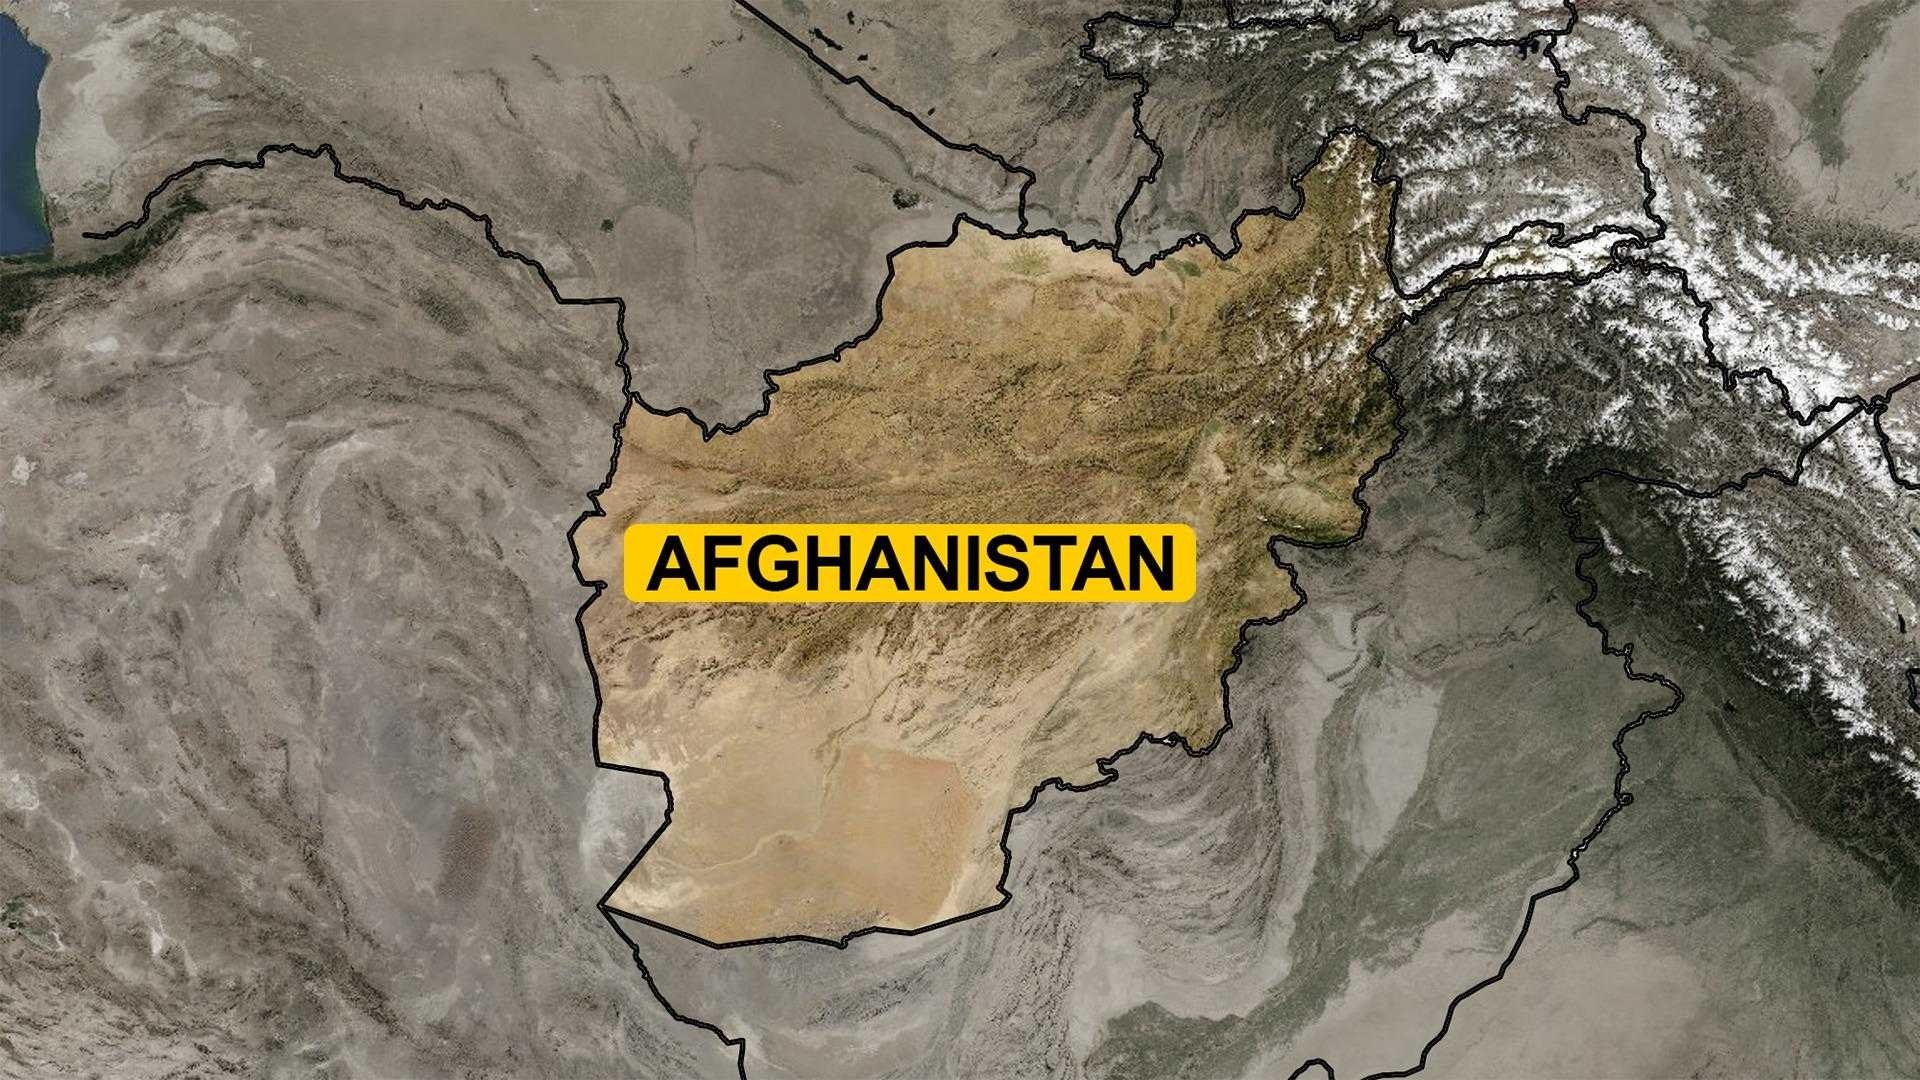 US Military Confirms Killing of Soldier in Eastern Afghanistan